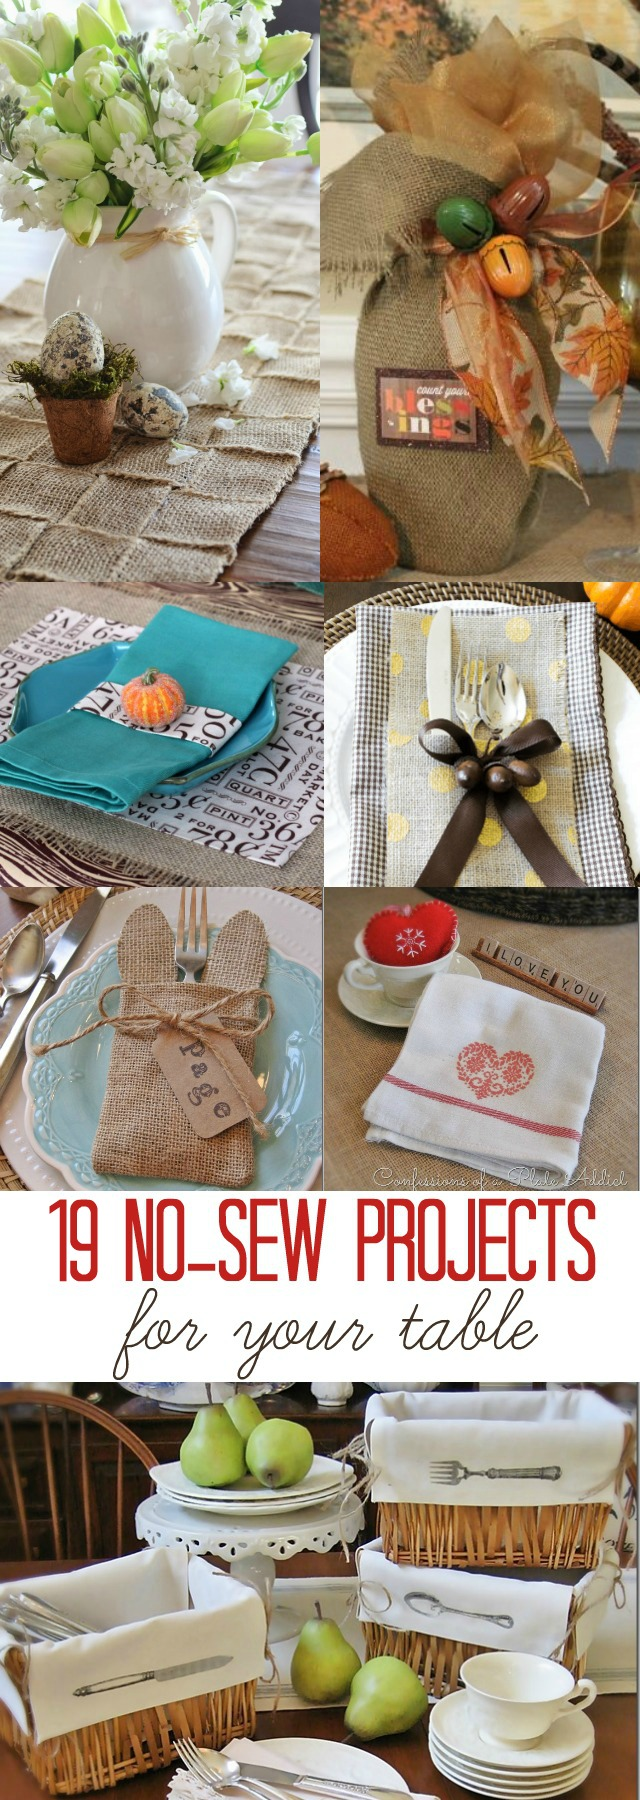 19 No-Sew Craft Projects for Your Table